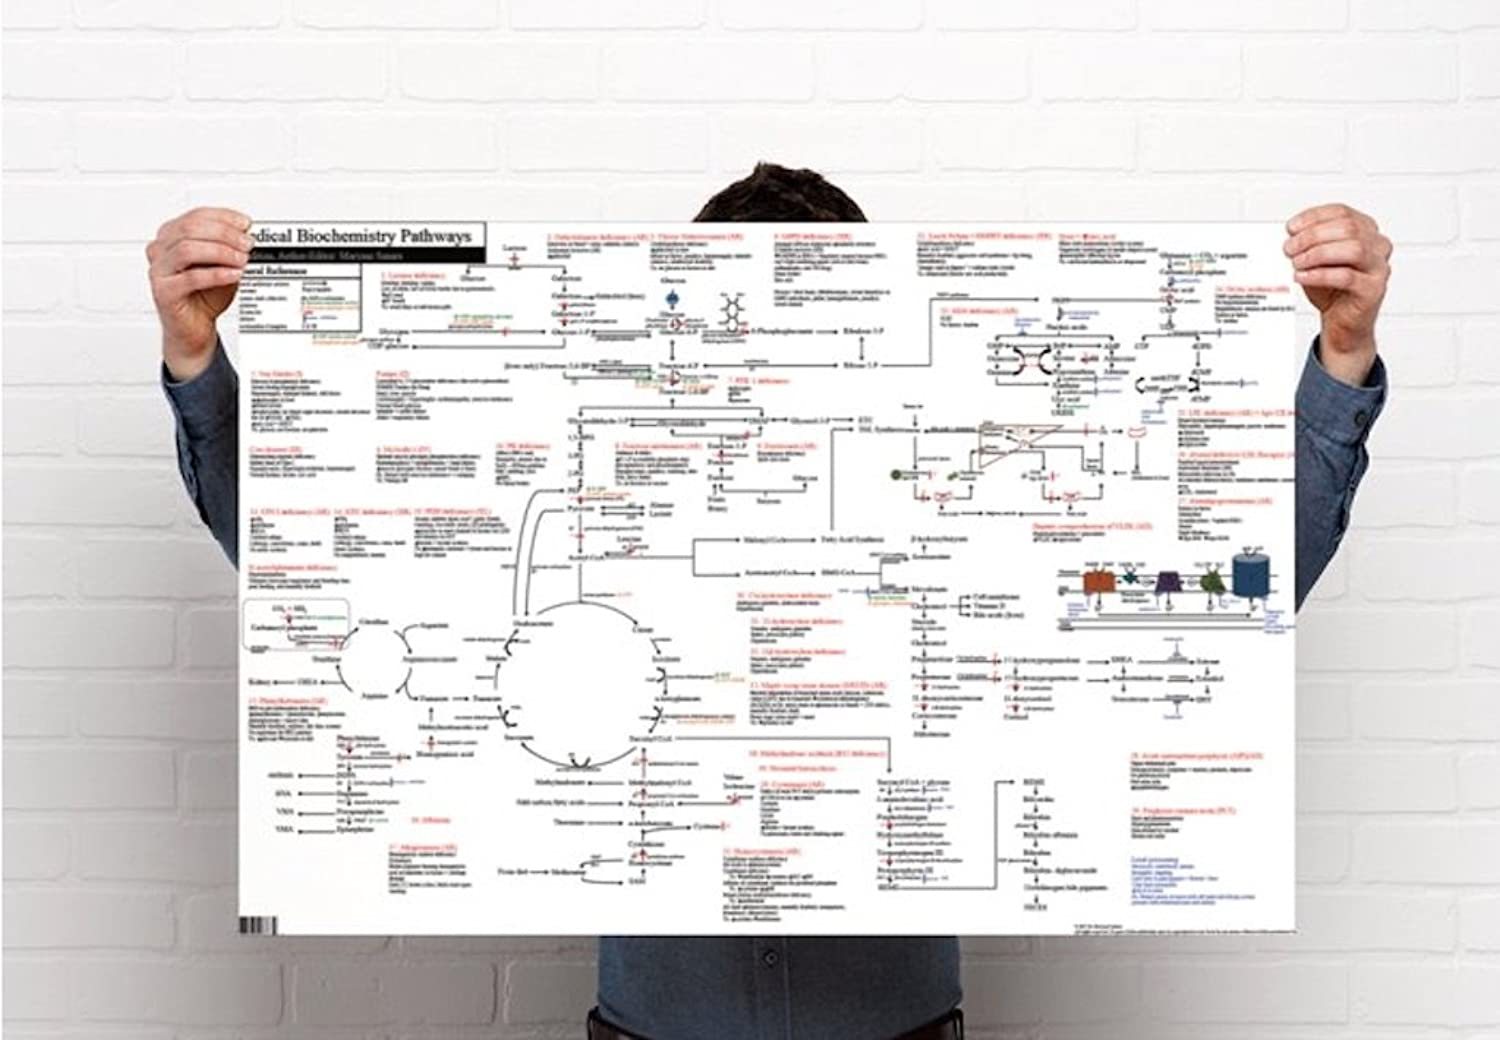 Medical Biochemistry Pathways Poster (36 x 24 inches, Gloss Finish)